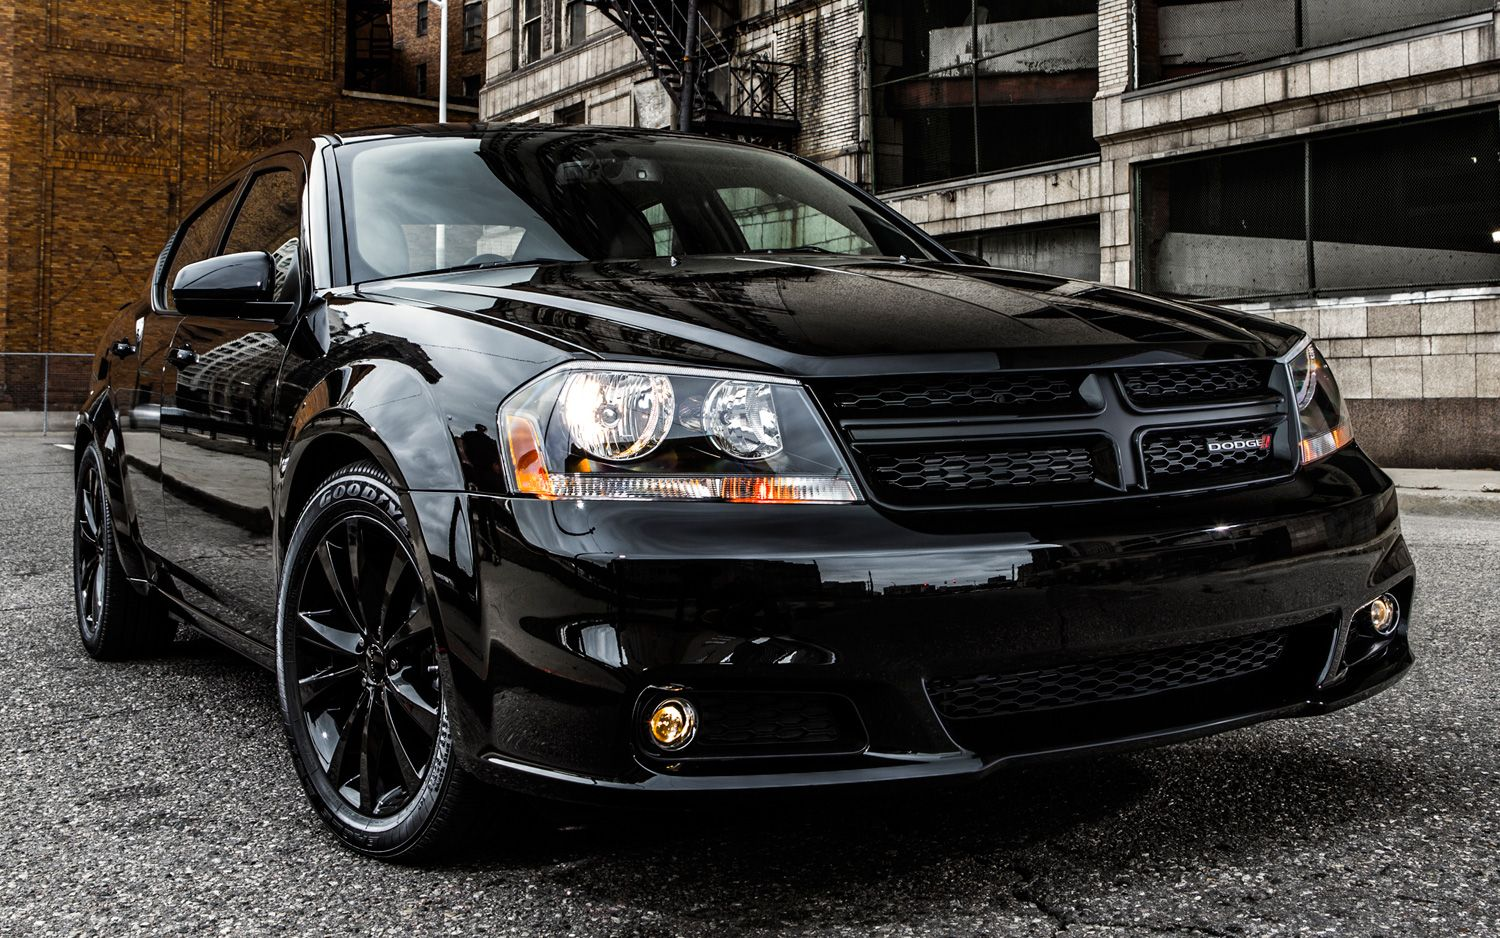 2015 dodge avenger specs and price the stylish vehicle like 2015 dodge avenger will be a great option that you should consider to have and it will be very